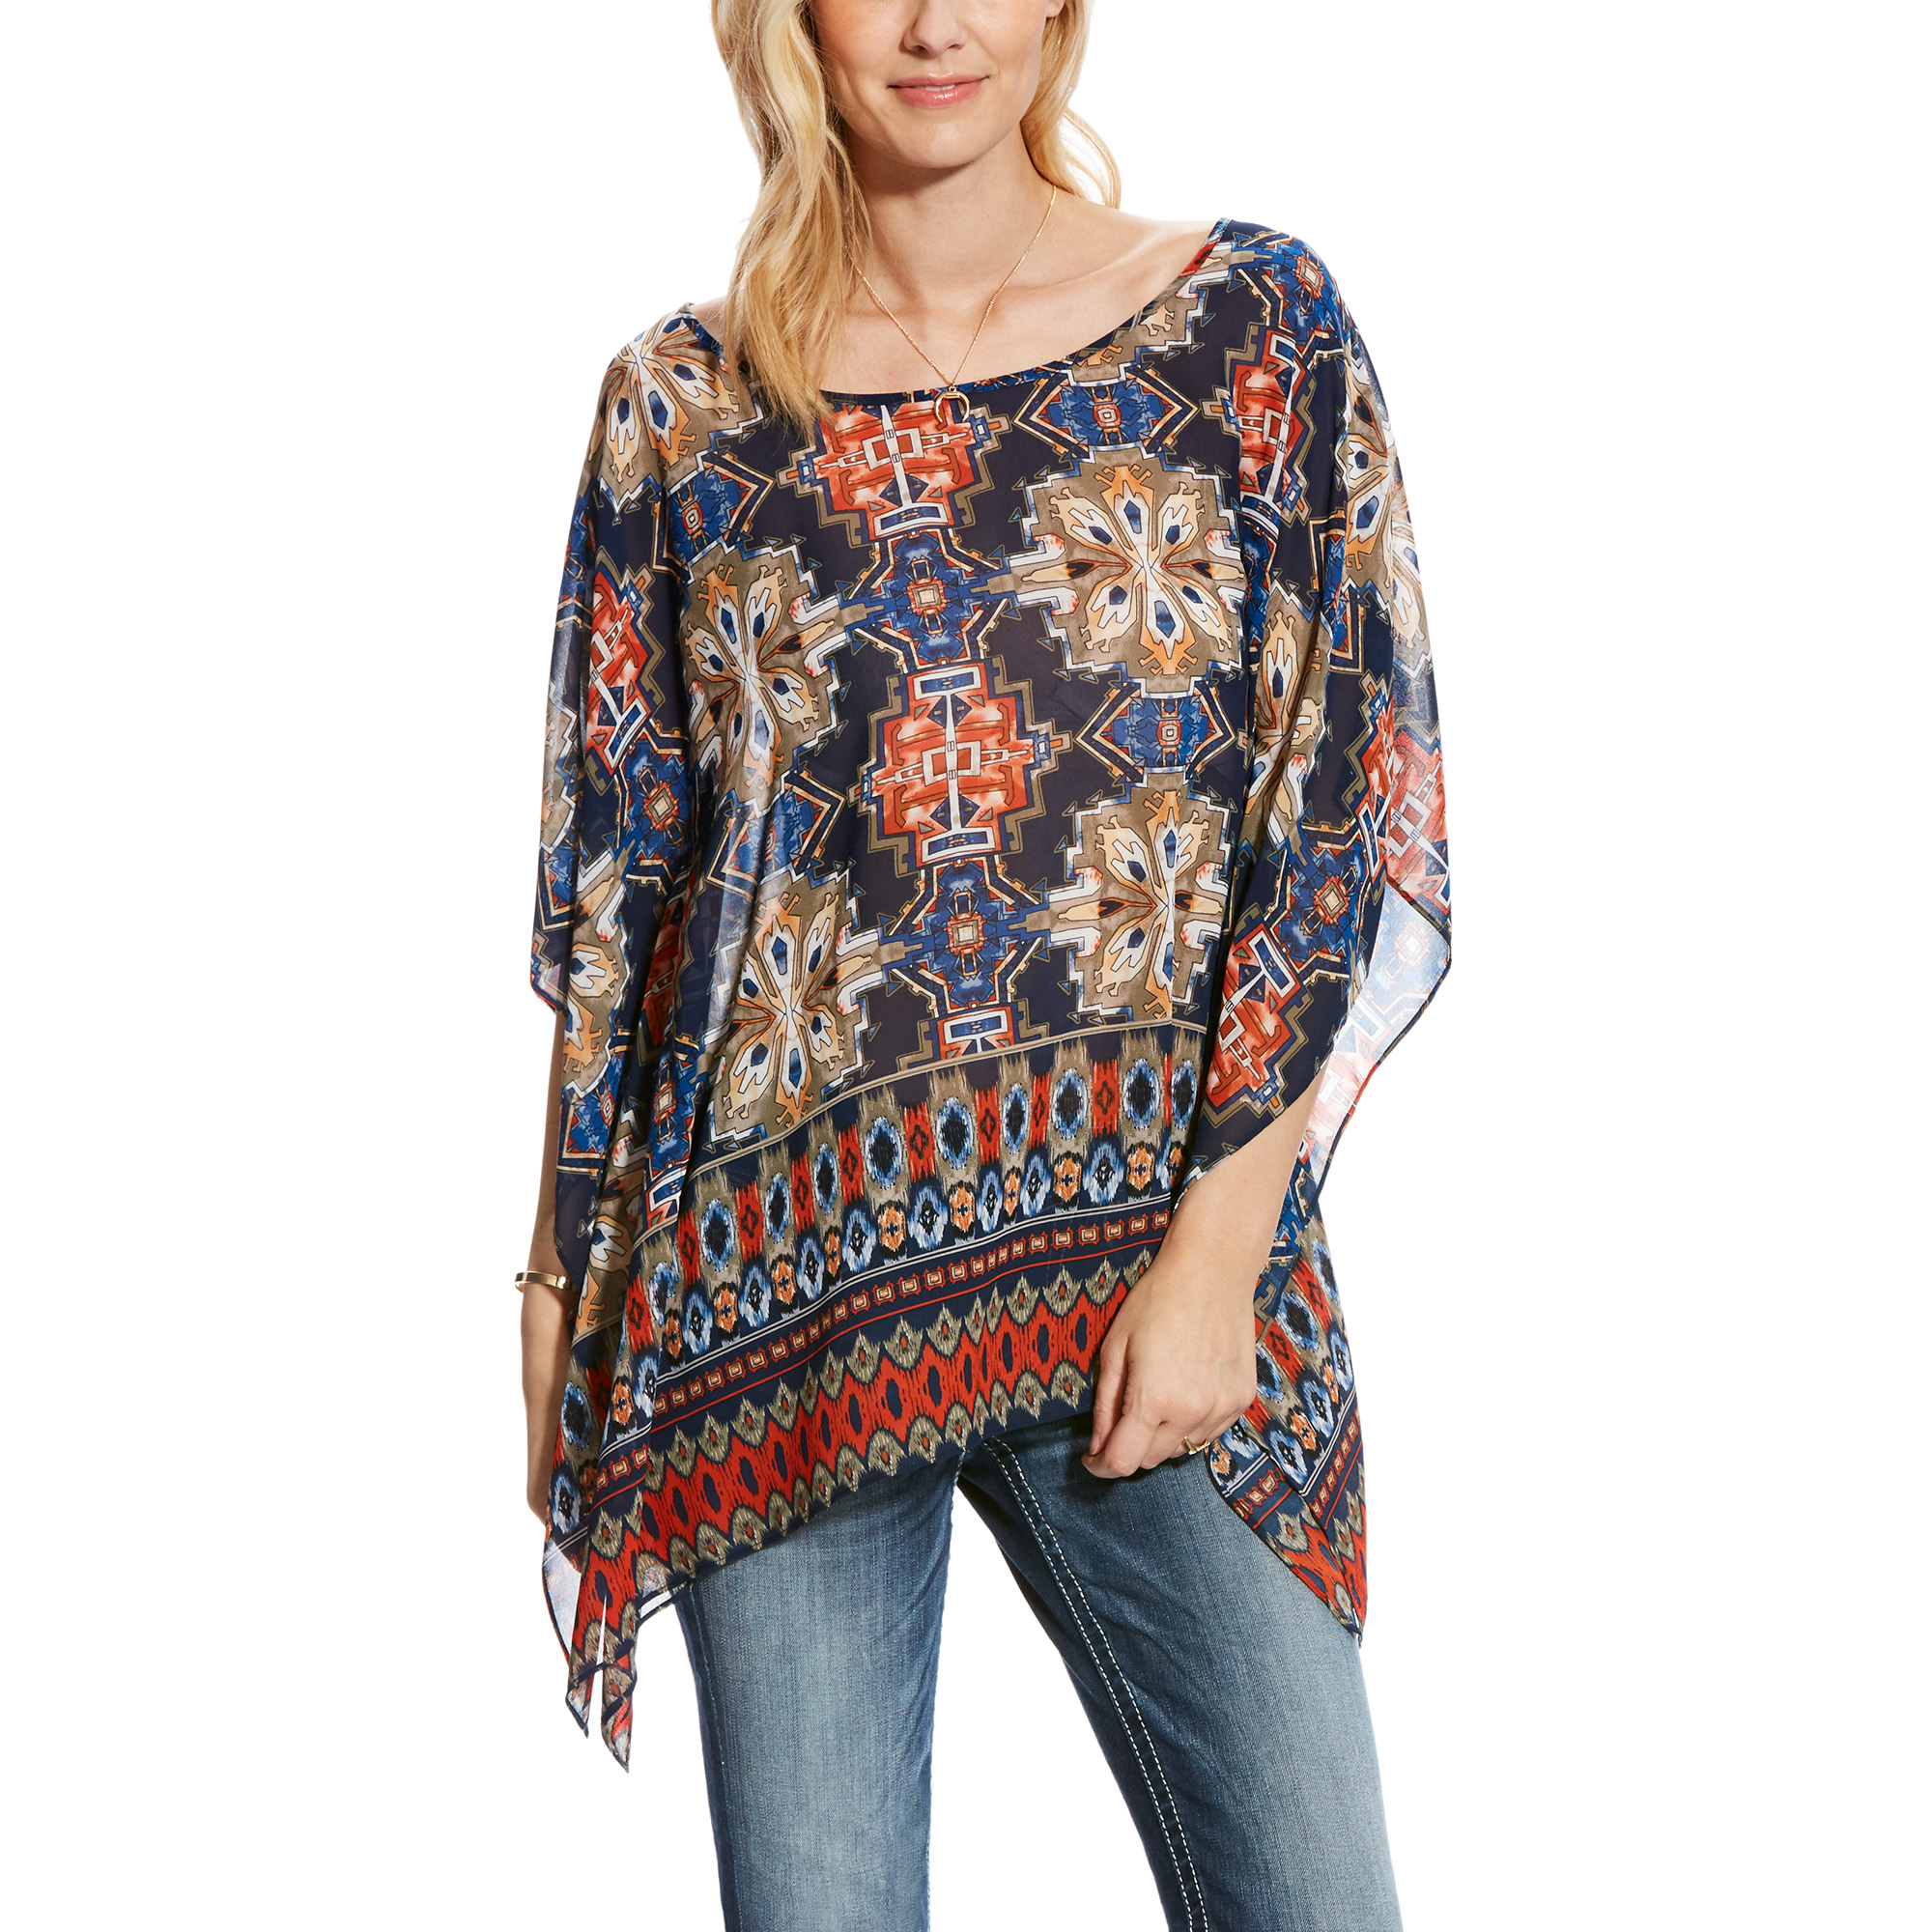 Wondrous Tunic from Ariat